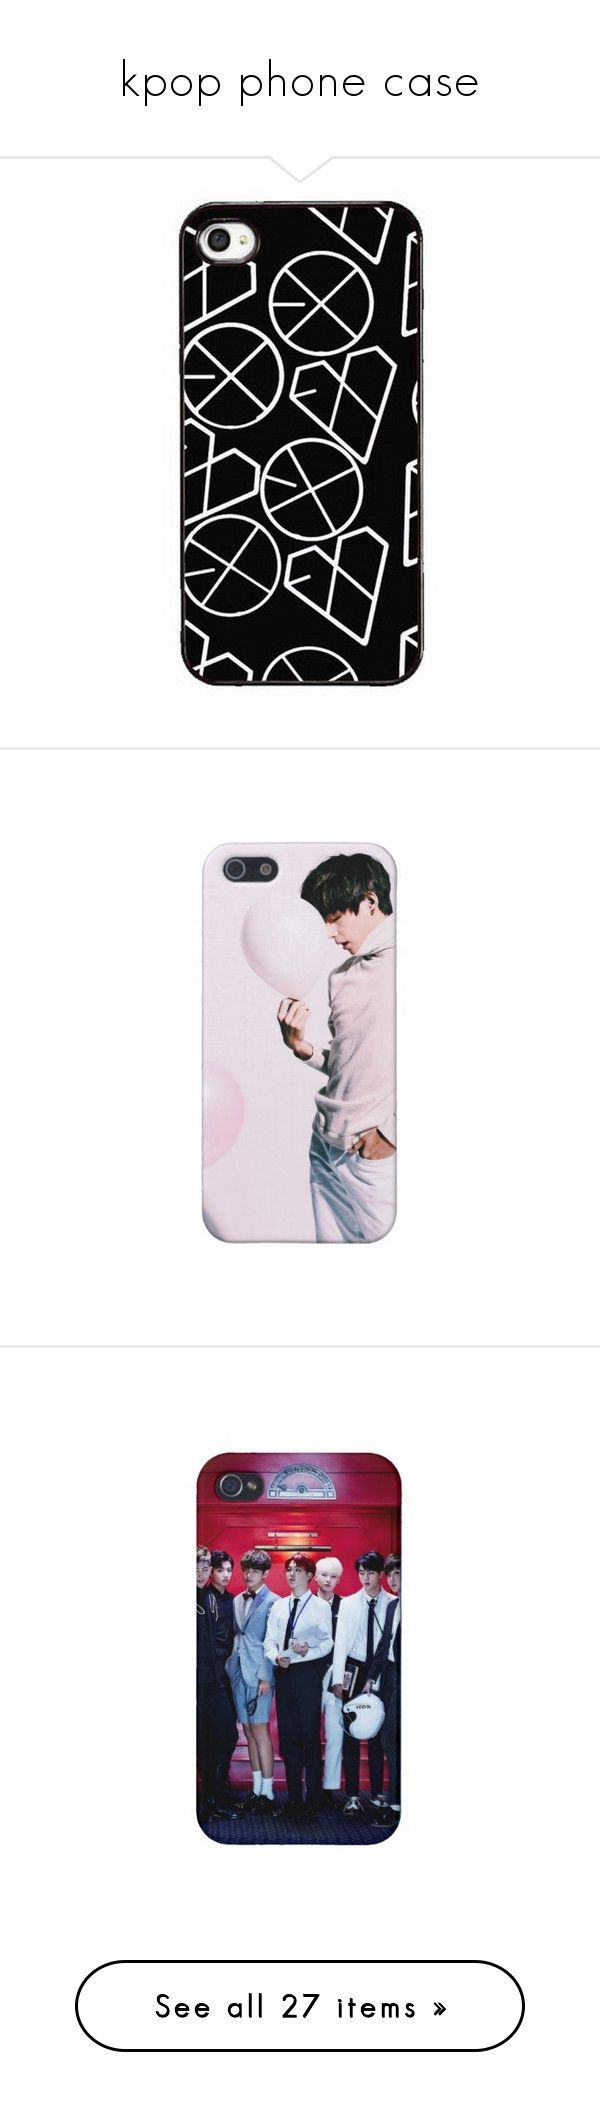 """""""kpop phone case"""" by schnpri ❤ liked on Polyvore featuring kpop, accessories, tech accessories, phone, phone cases, samsung smartphones, samsung, samsung galaxy smartphone and bts"""